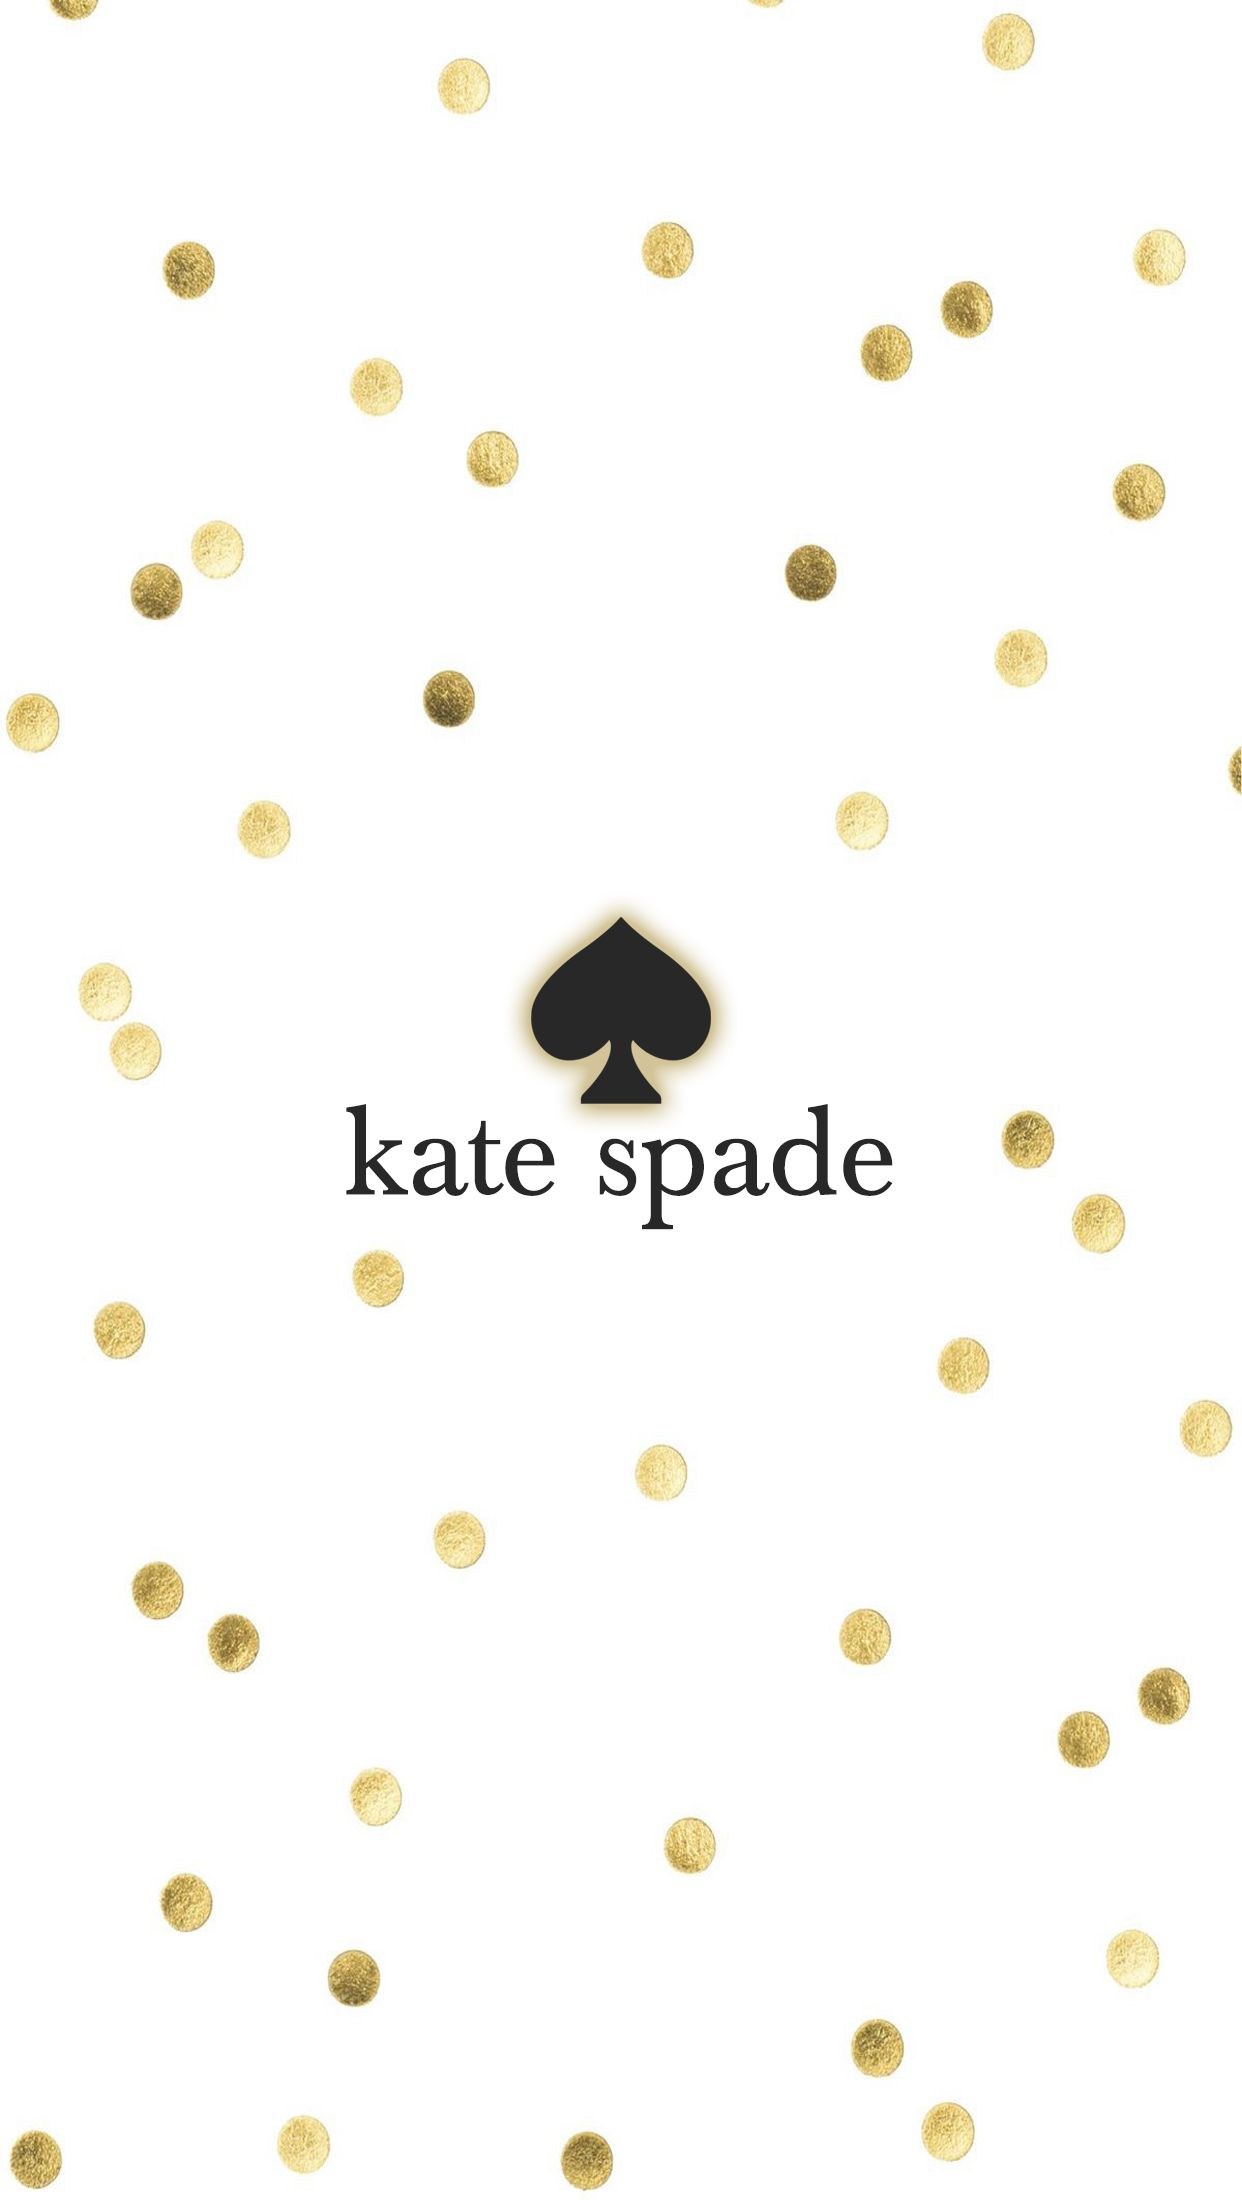 kate spade iphone wallpaper  Kate spade gold iPhone Wallpaper Background | wallpapers | Pinterest ...